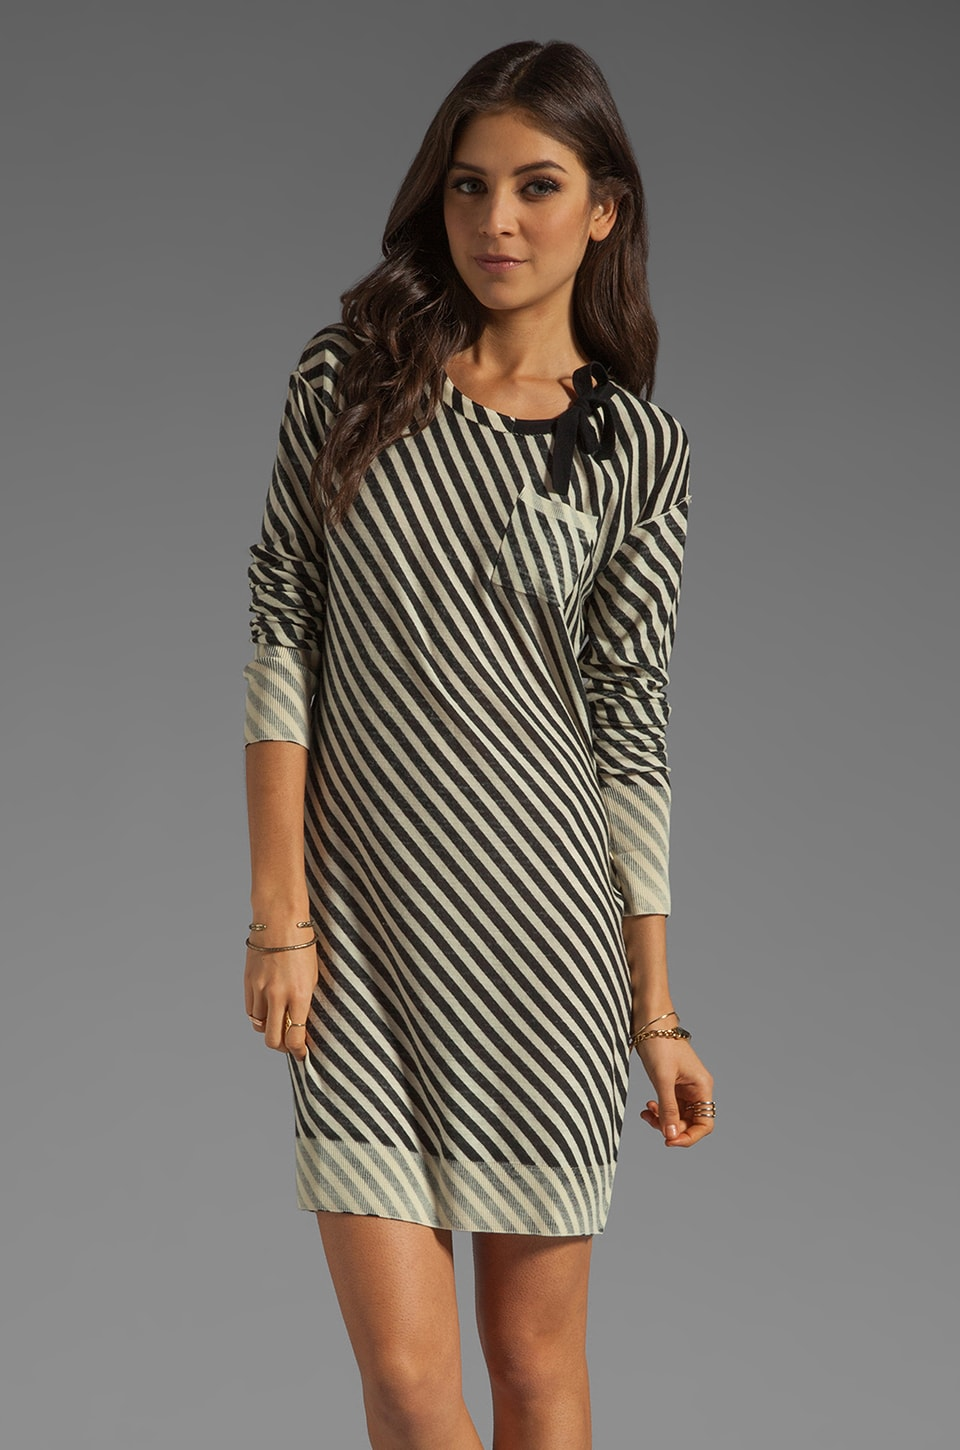 SONIA by Sonia Rykiel Striped Shirt Dress in White/Black